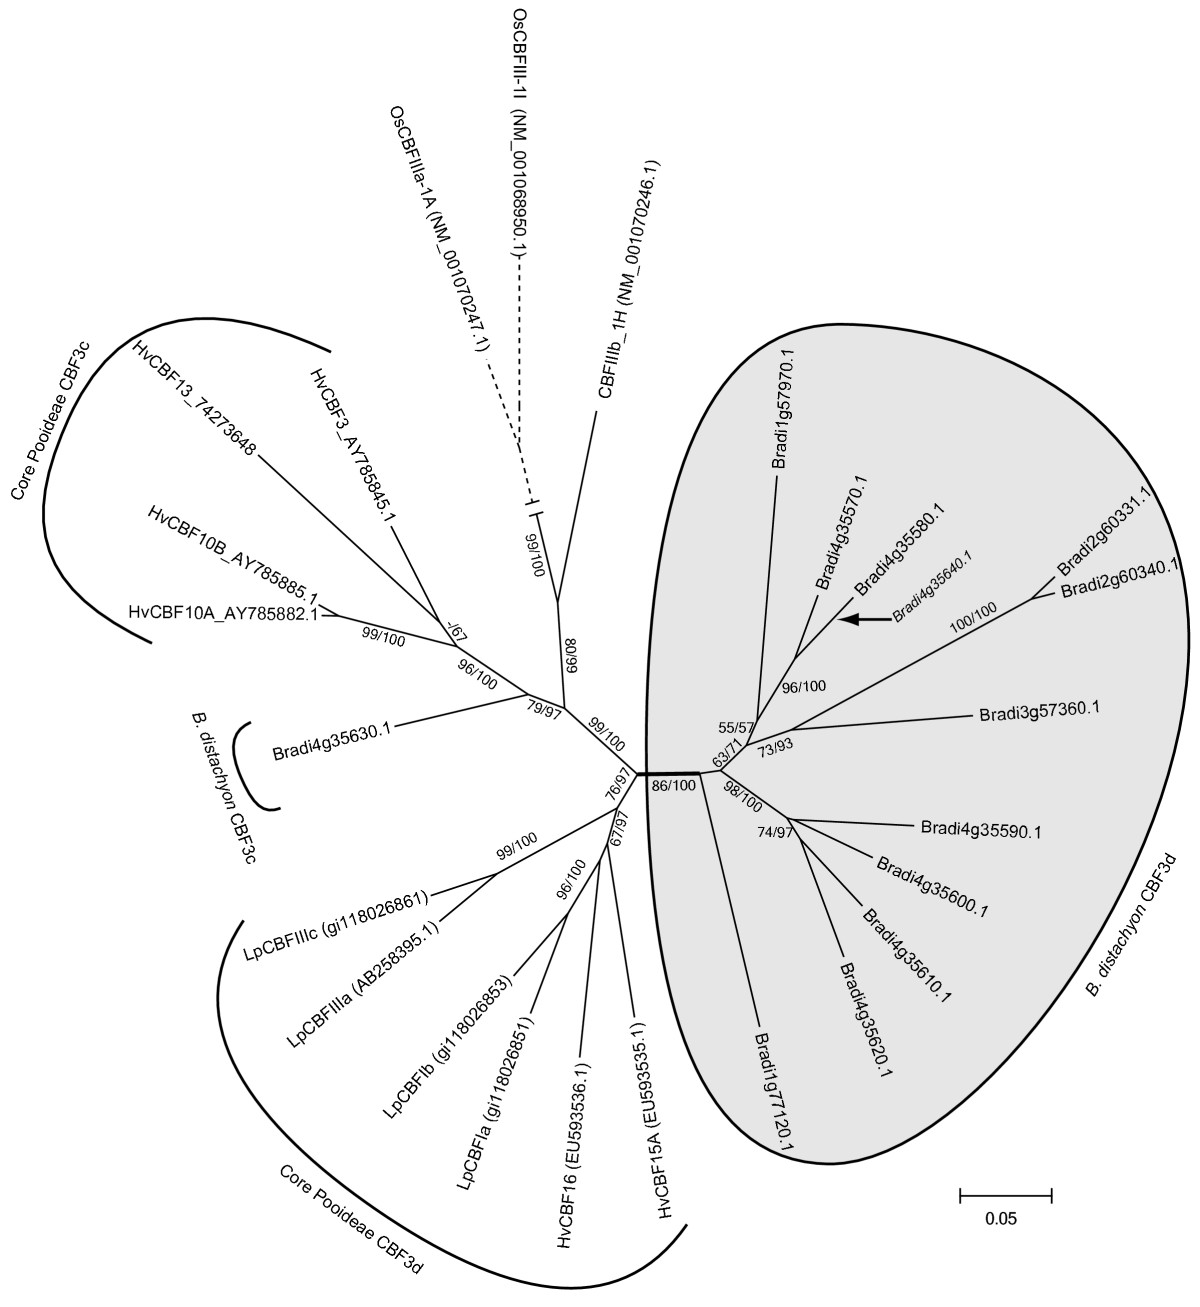 https://static-content.springer.com/image/art%3A10.1186%2F1471-2229-12-65/MediaObjects/12870_2011_Article_1092_Fig4_HTML.jpg